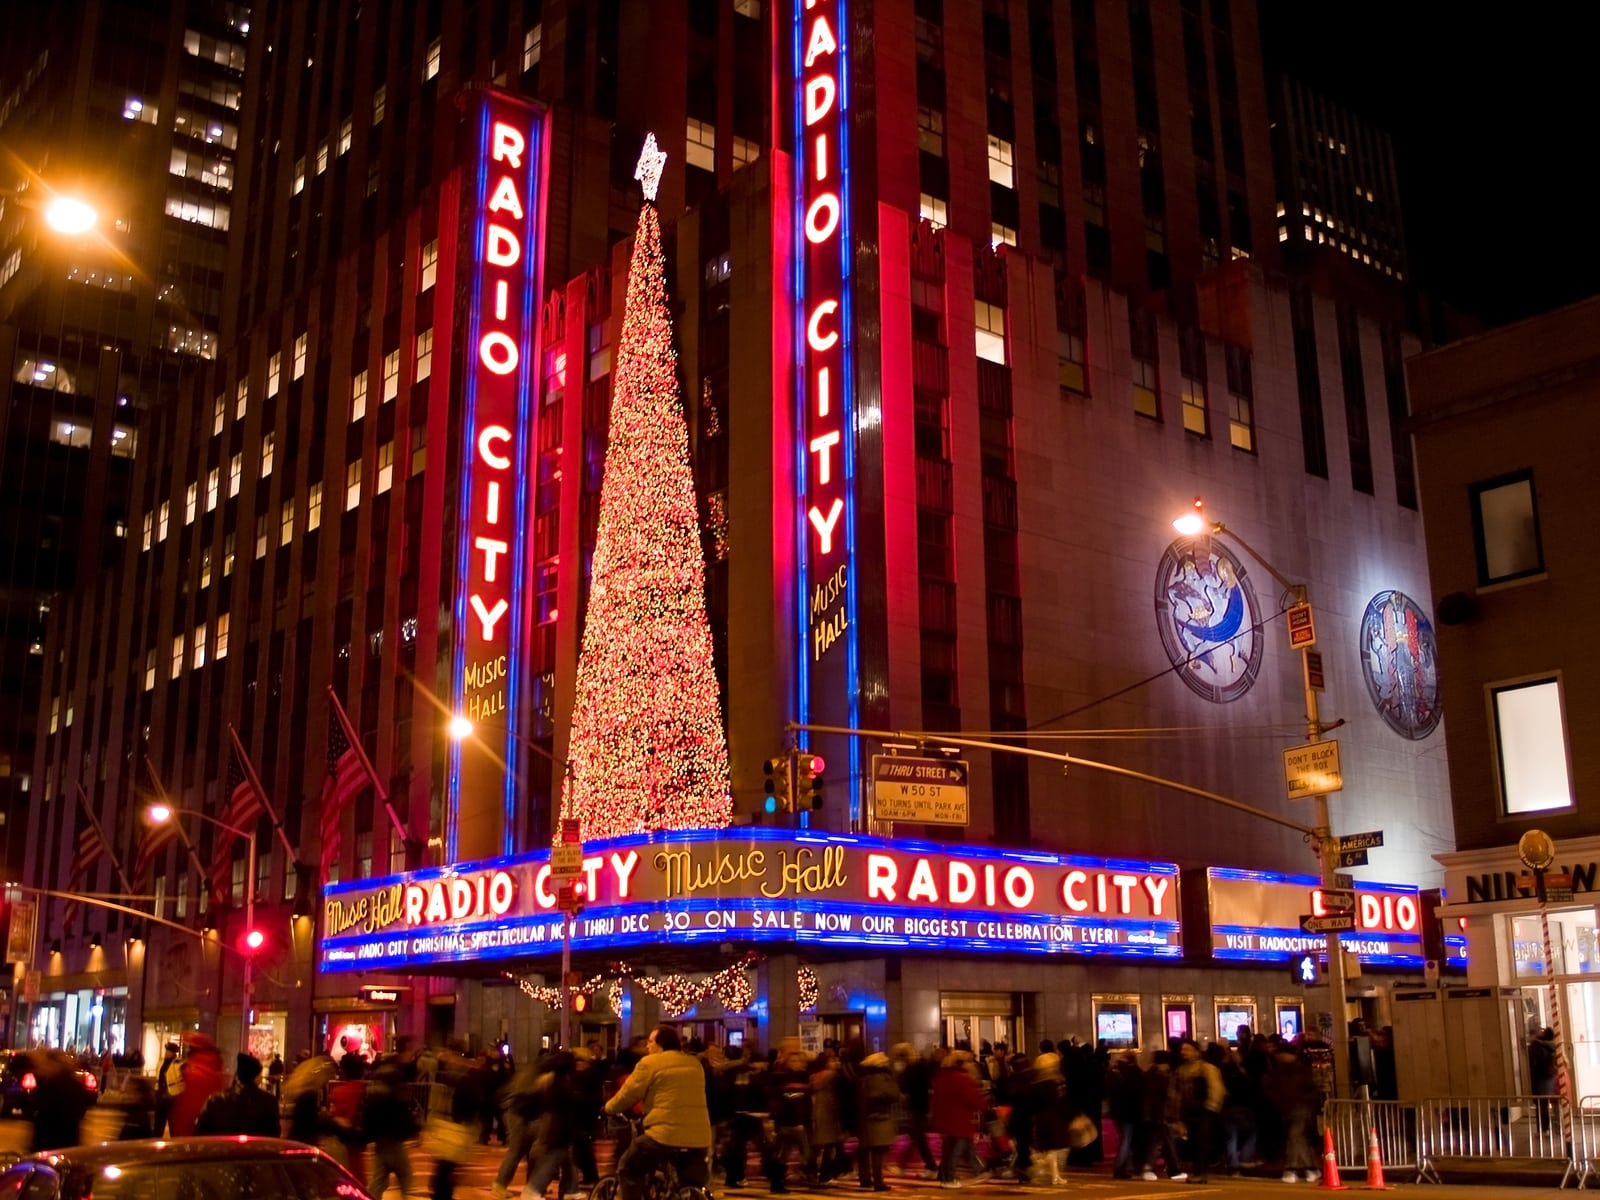 Radio City Music Hall Rockefeller Center NY Dec 5th 2008: Large crowds are all around Rockefeller Center and Radio City Music Hall during the holidays.